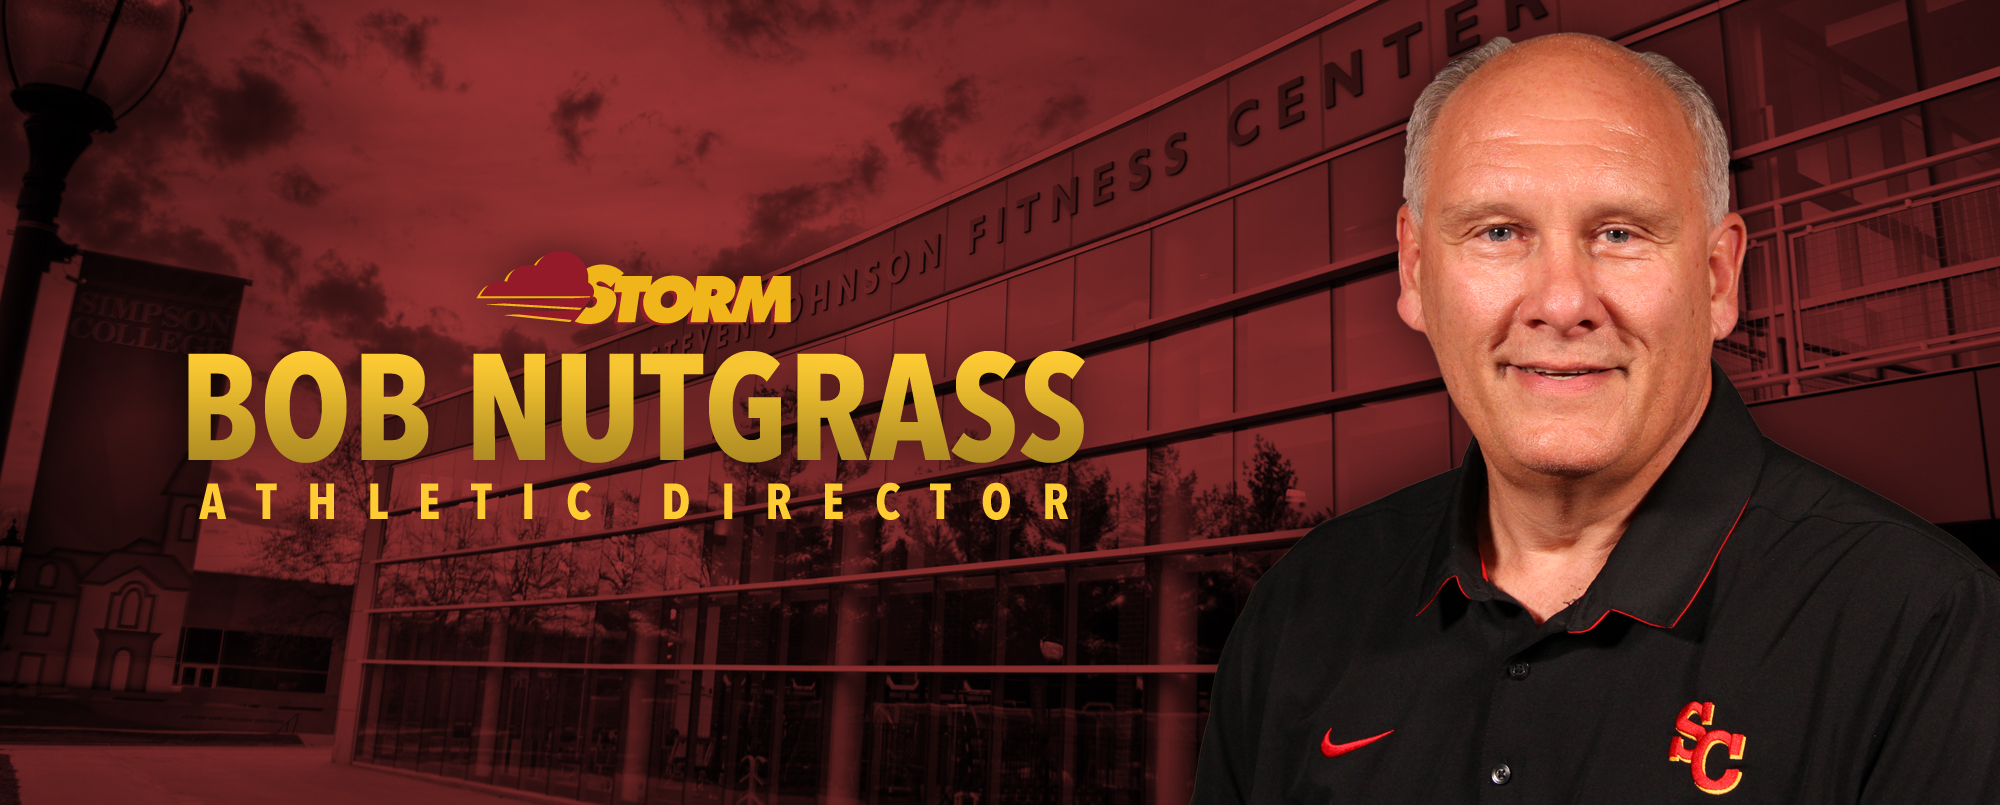 Bob Nutgrass appointed Athletic Director